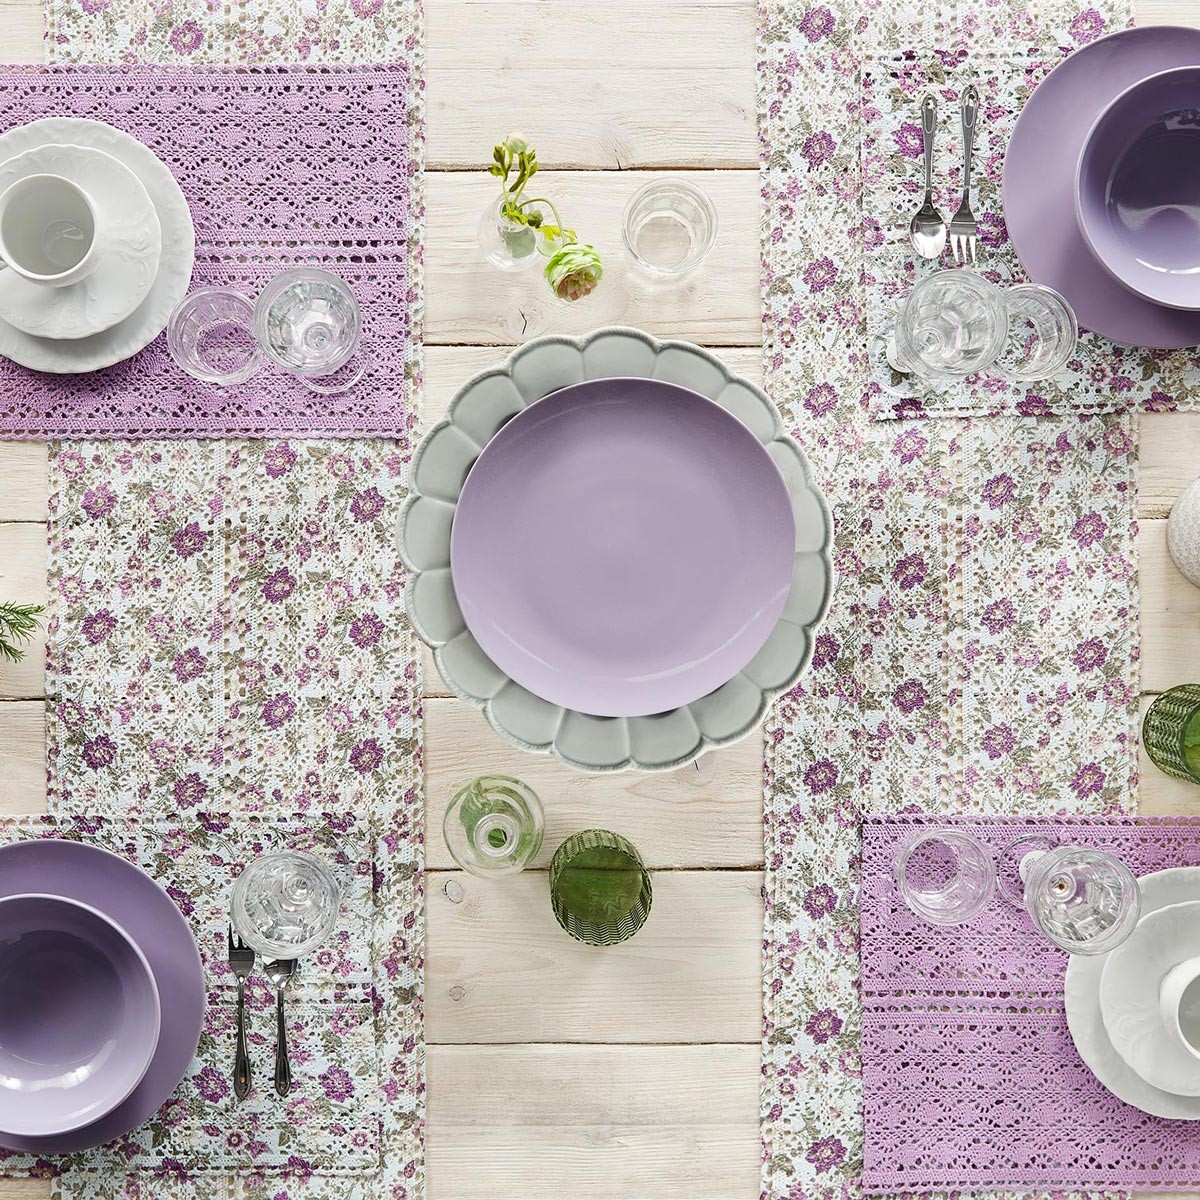 Τραβέρσα Gofis Home Orchard Purple 020/20